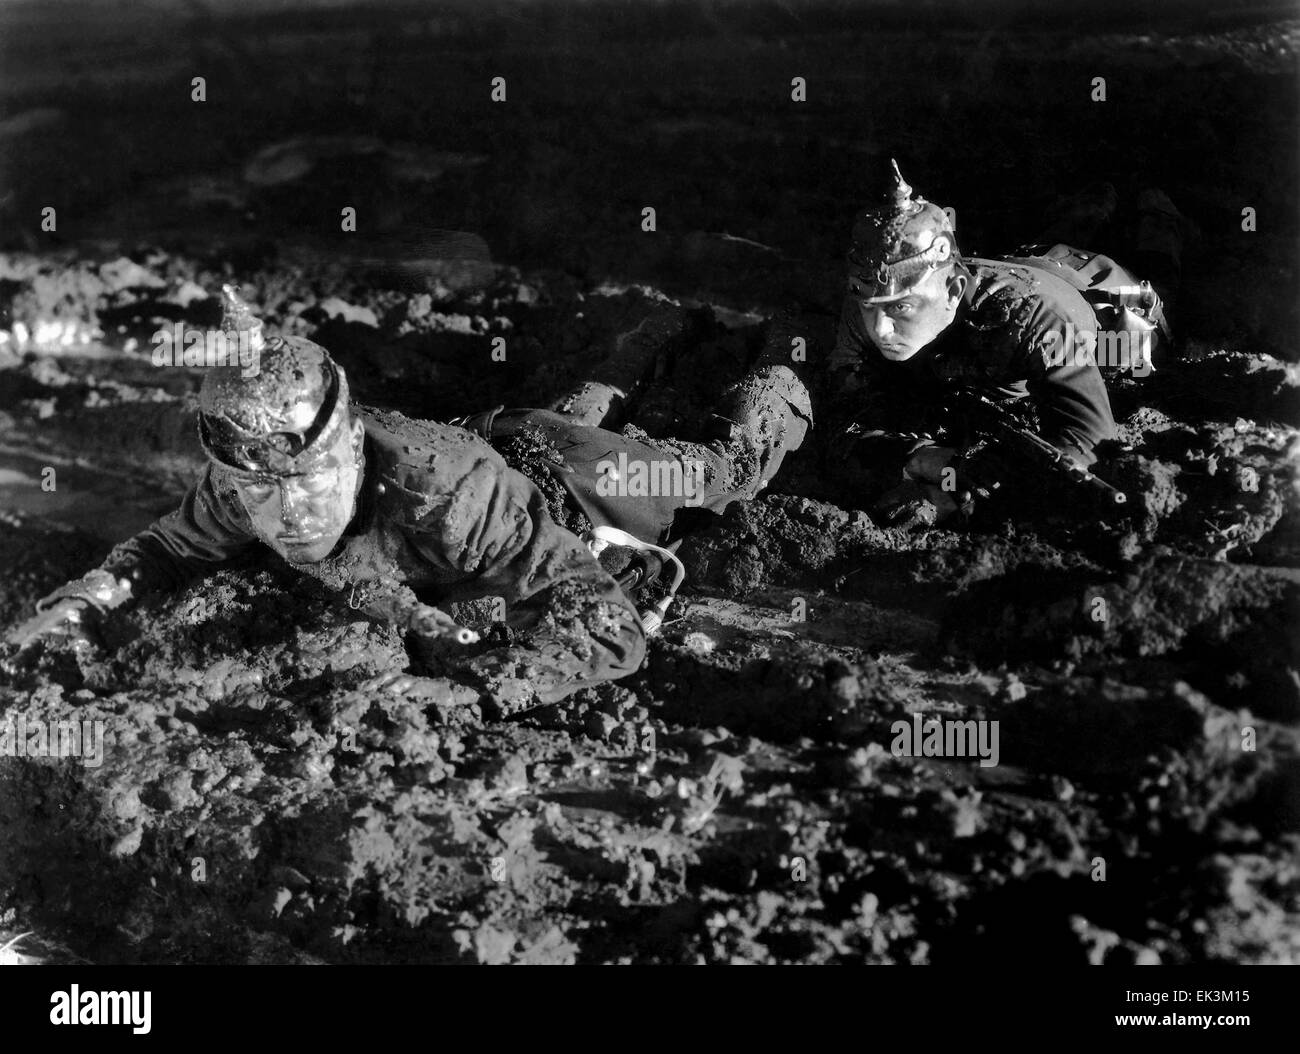 Two Soldiers on-set of the Film 'All Quiet on the Western Front', 1930 - Stock Image